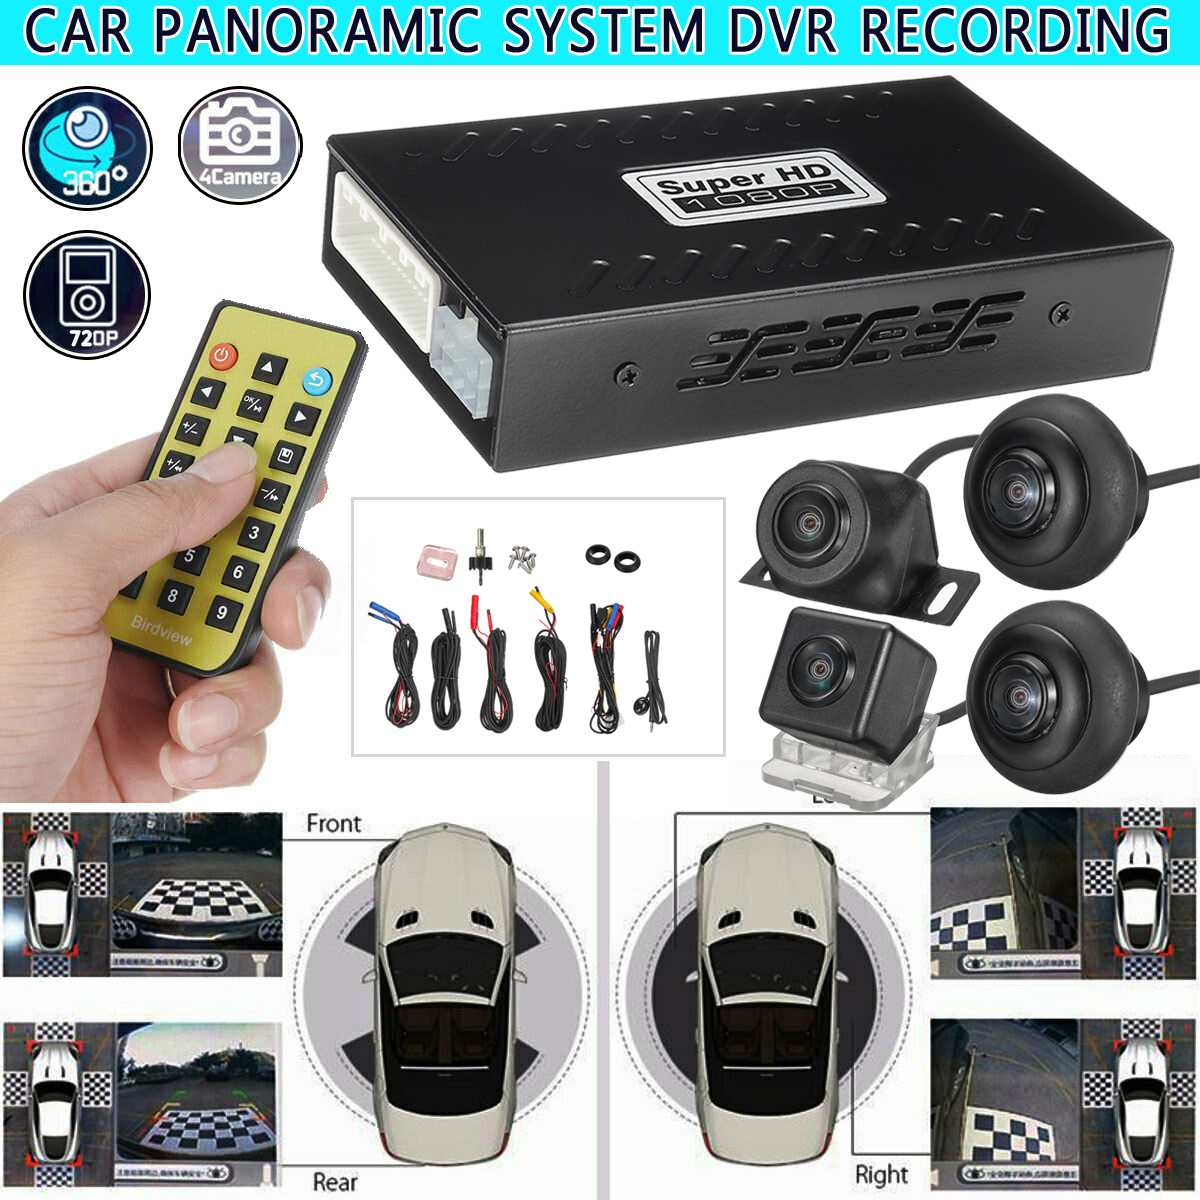 360 Degree Car Surround View System Auto Bird View Panorama DVR System 4 Camera HD 1080P Car DVR Recorder 2D Parking Assistance360 Degree Car Surround View System Auto Bird View Panorama DVR System 4 Camera HD 1080P Car DVR Recorder 2D Parking Assistance